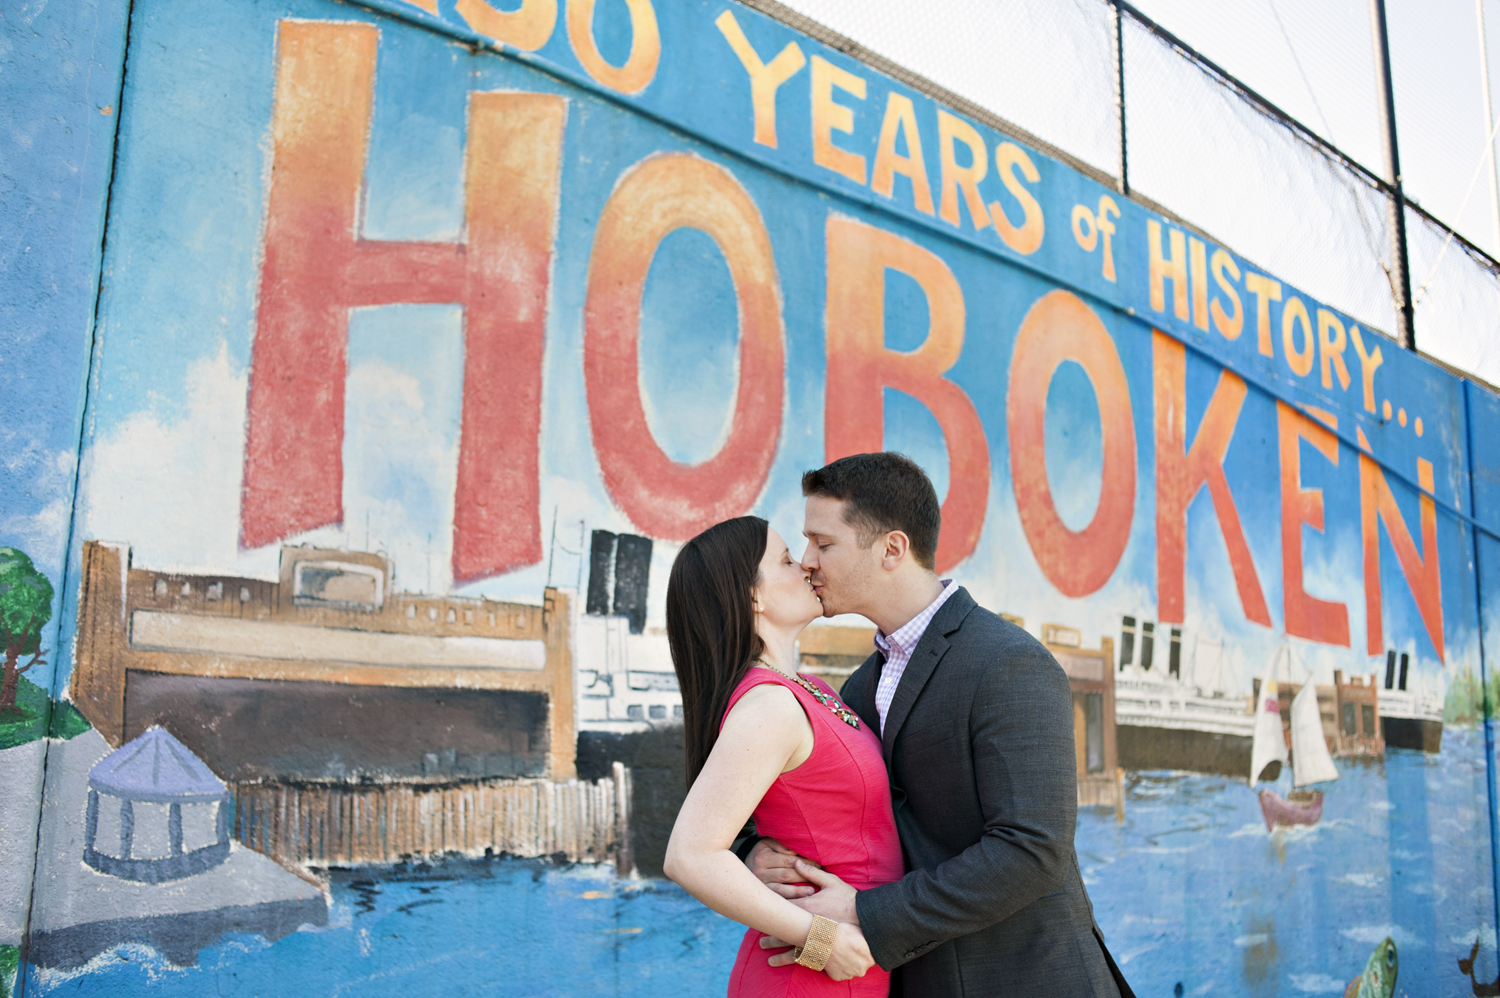 engaged couple in front of Hoboken mural during their engagement session. Hoboken wedding photographers